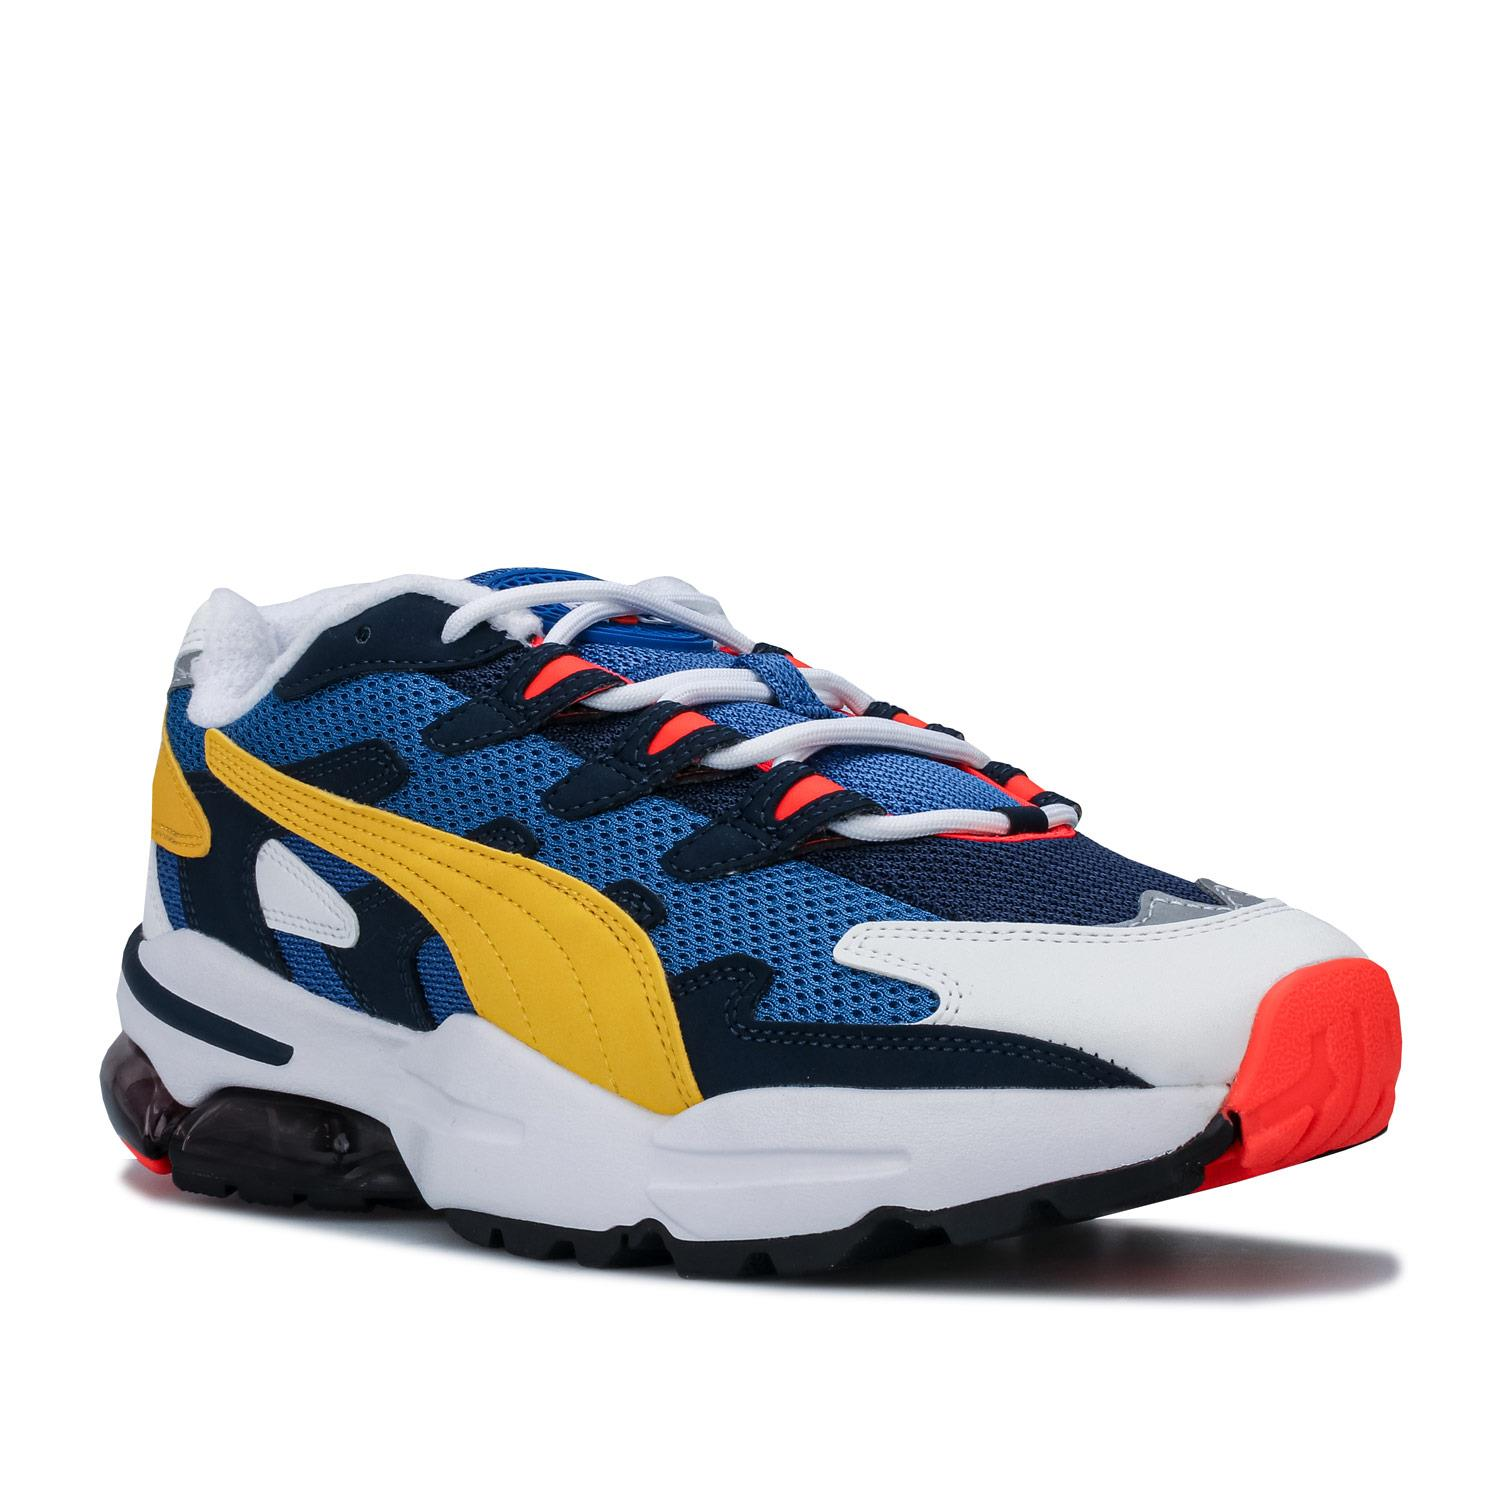 Mens-Puma-Cell-Alien-OG-Trainers-in-Blue-Green-Black-Red-Blue-and-Yellow thumbnail 9